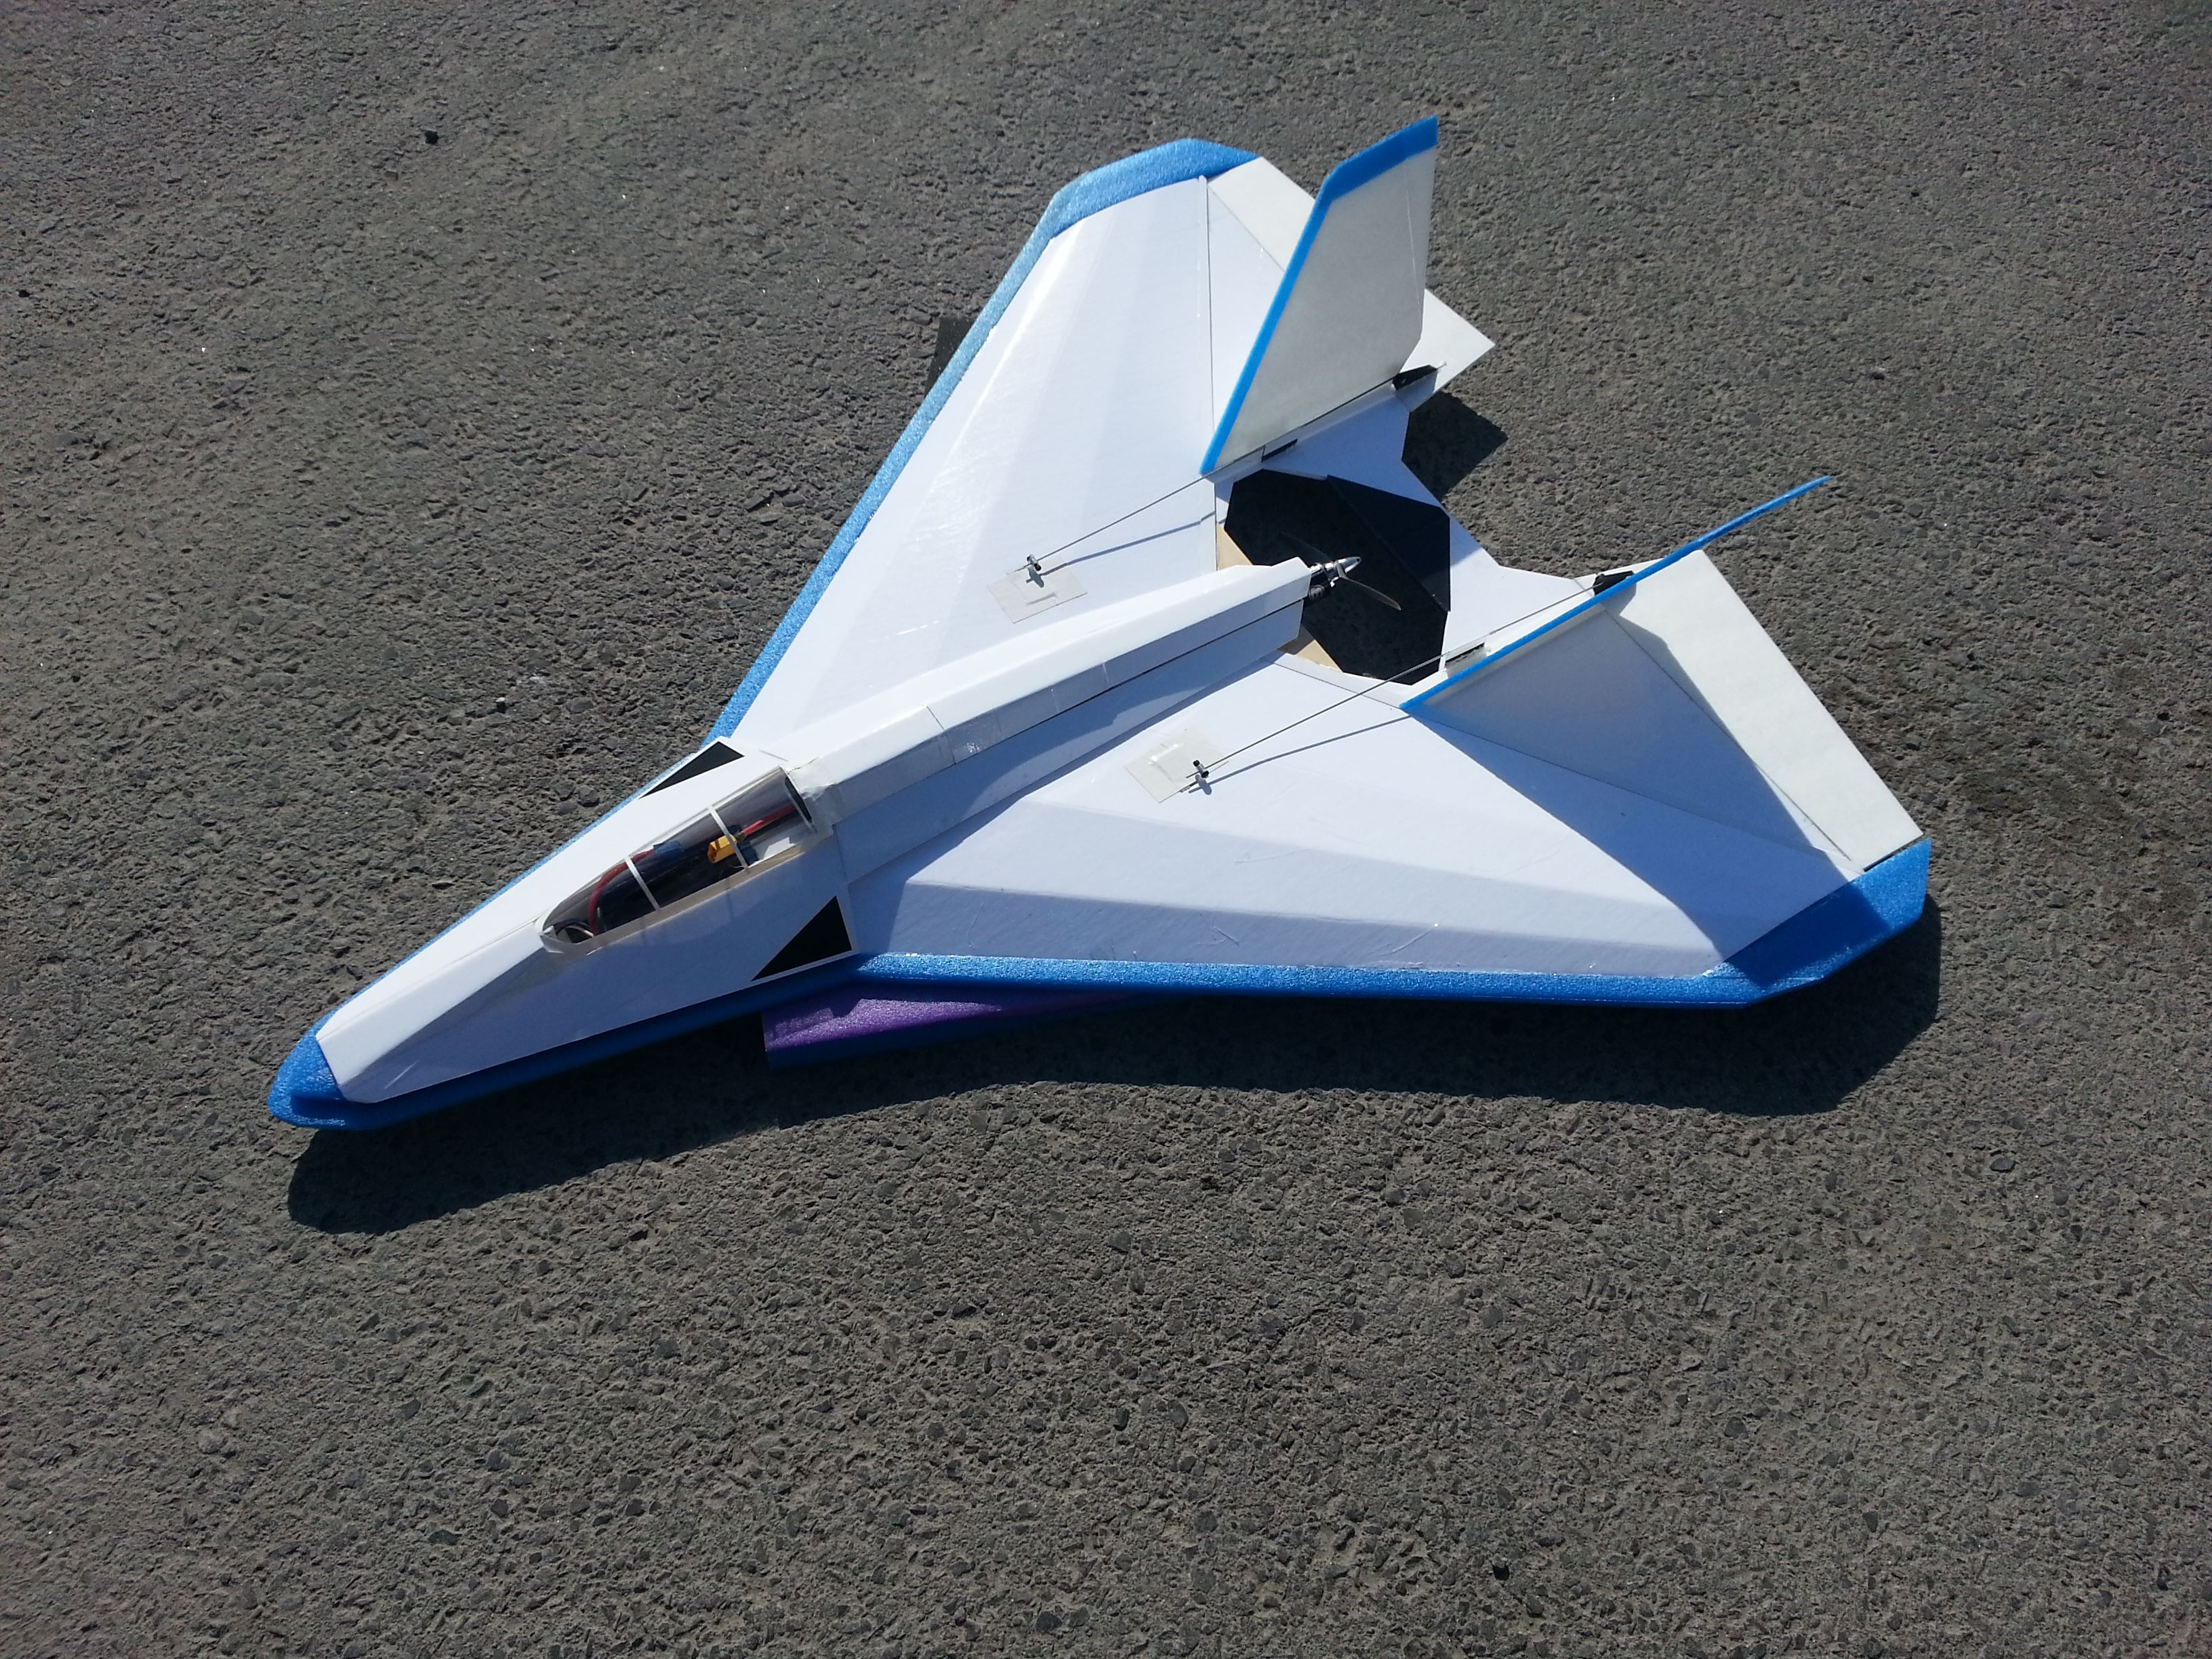 Manta Ray Scratch Built RC airplane | FliteTest Forum